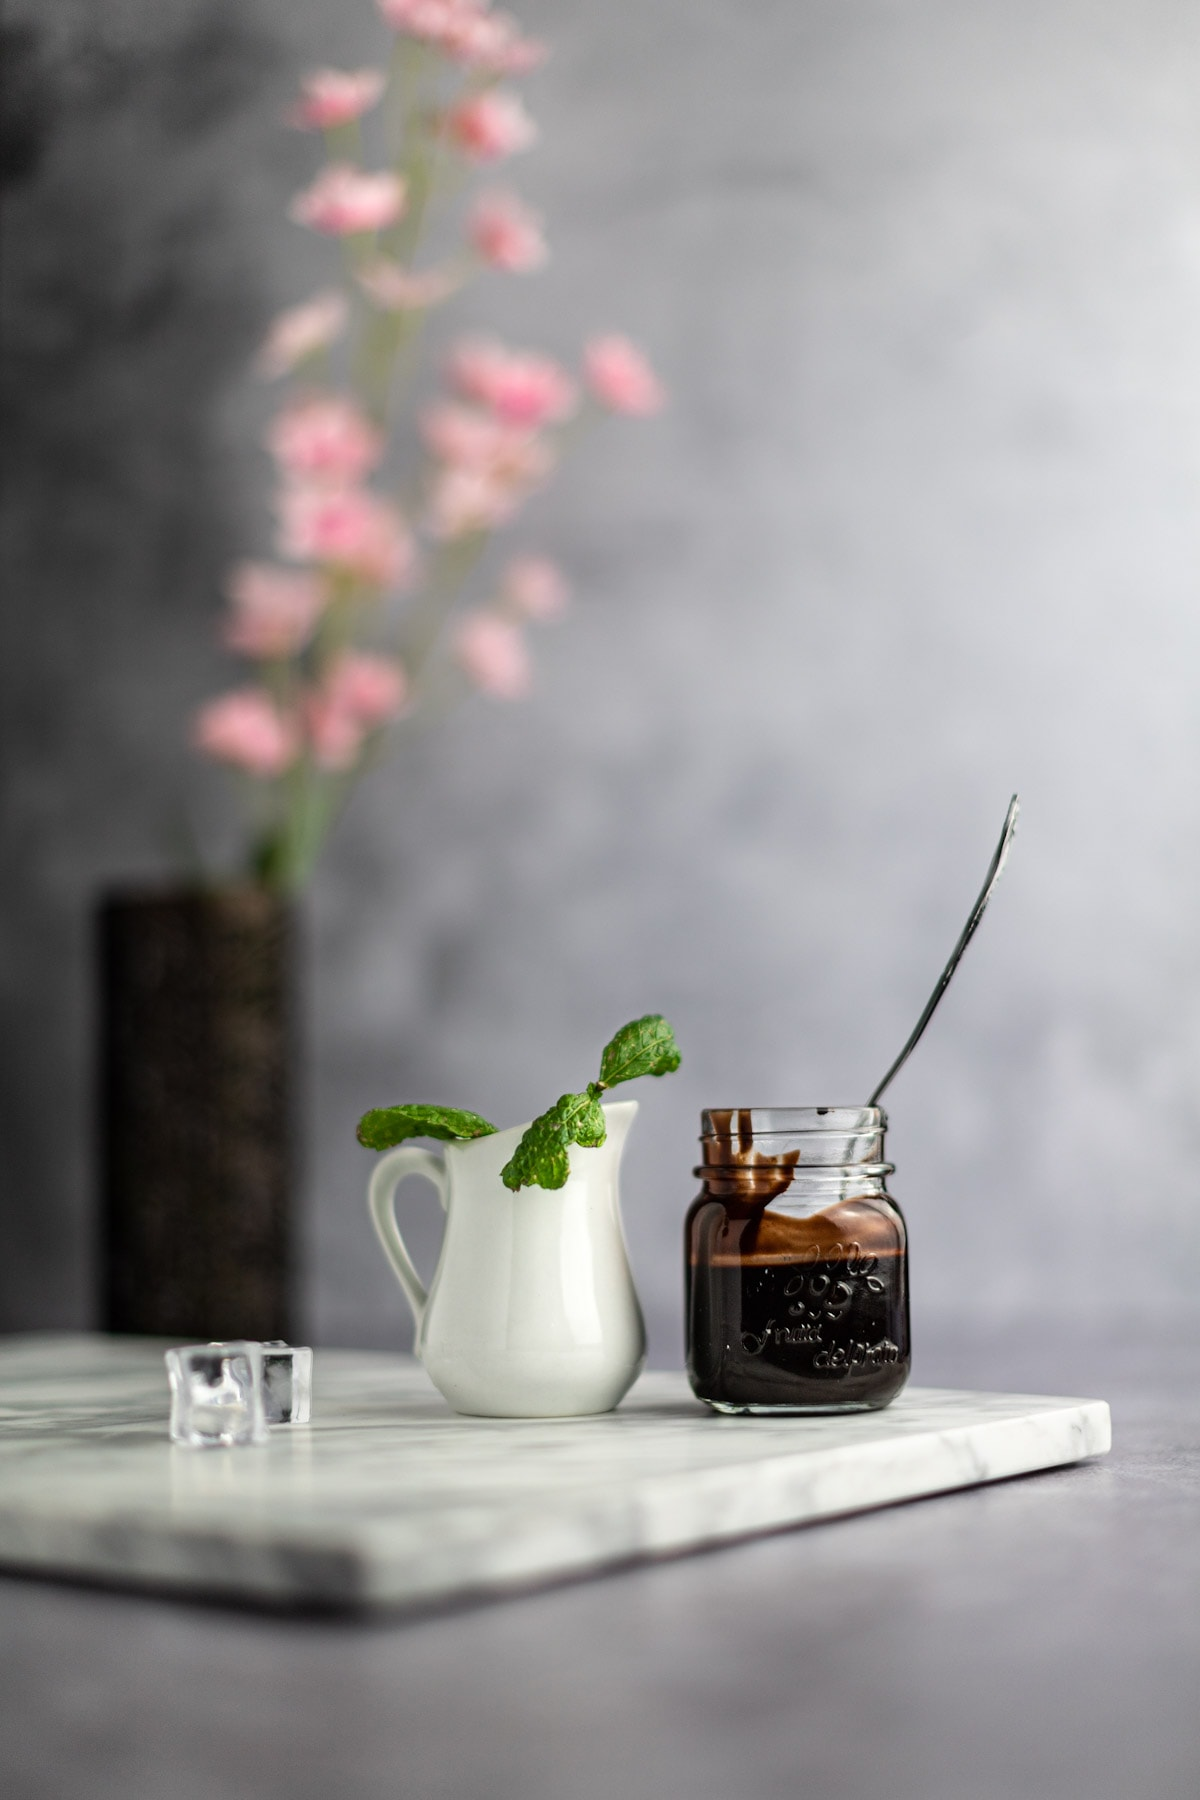 A small white jar filled with mint leaves sitting next to a mason jar filled halfway with chocolate syrup and a spoon sitting in the jar, pink flowers in the background.